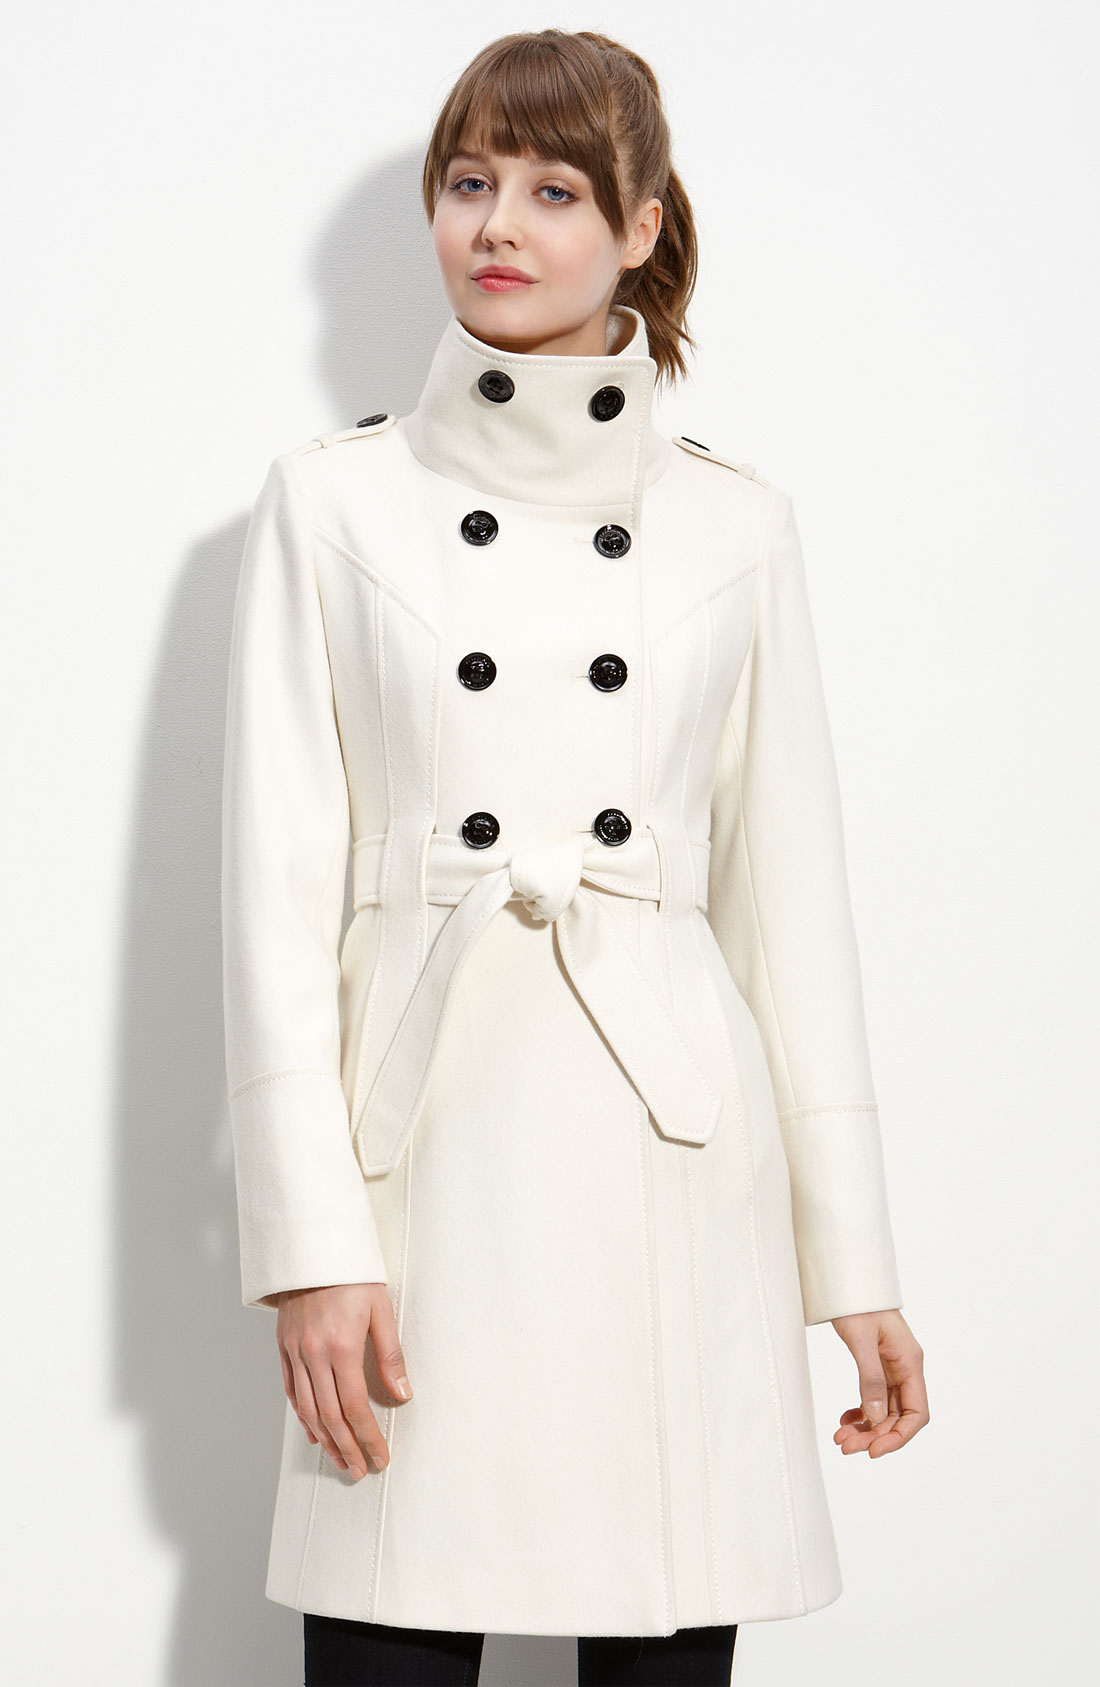 Guess coat women